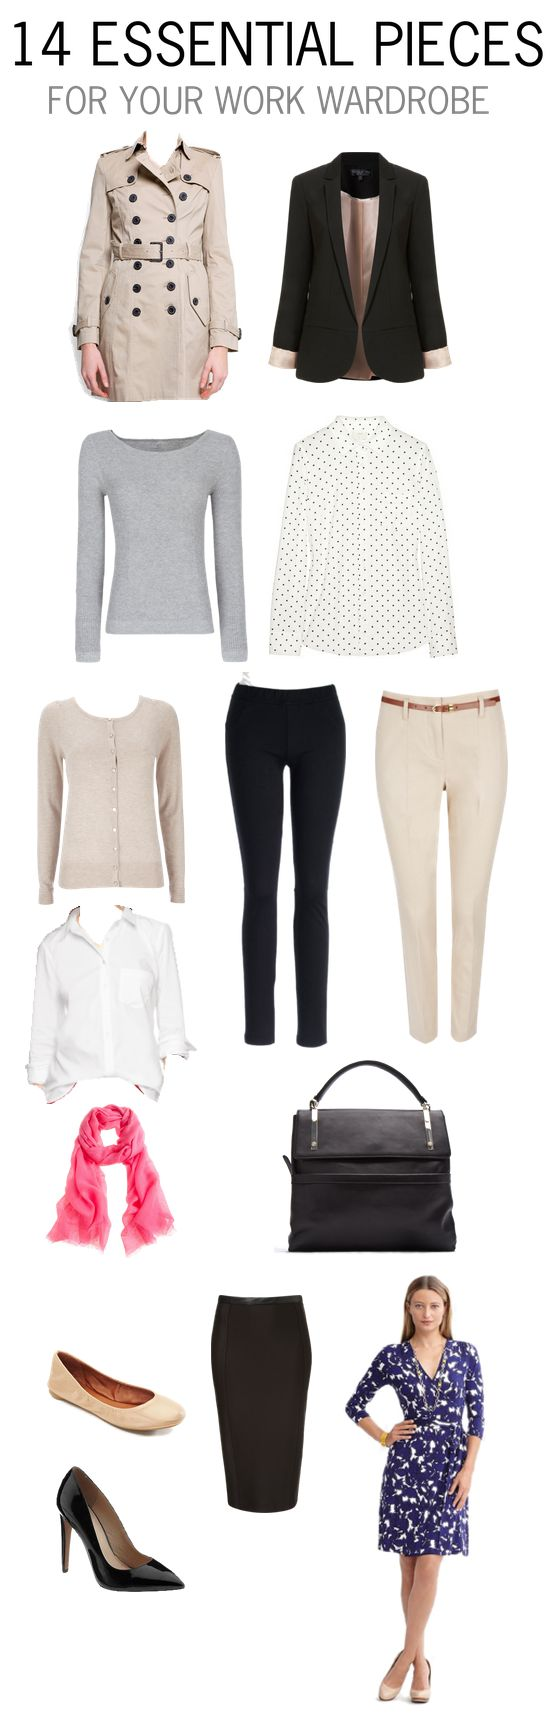 capsule inspiration 14 Essential Pieces For Your Work Wardrobe